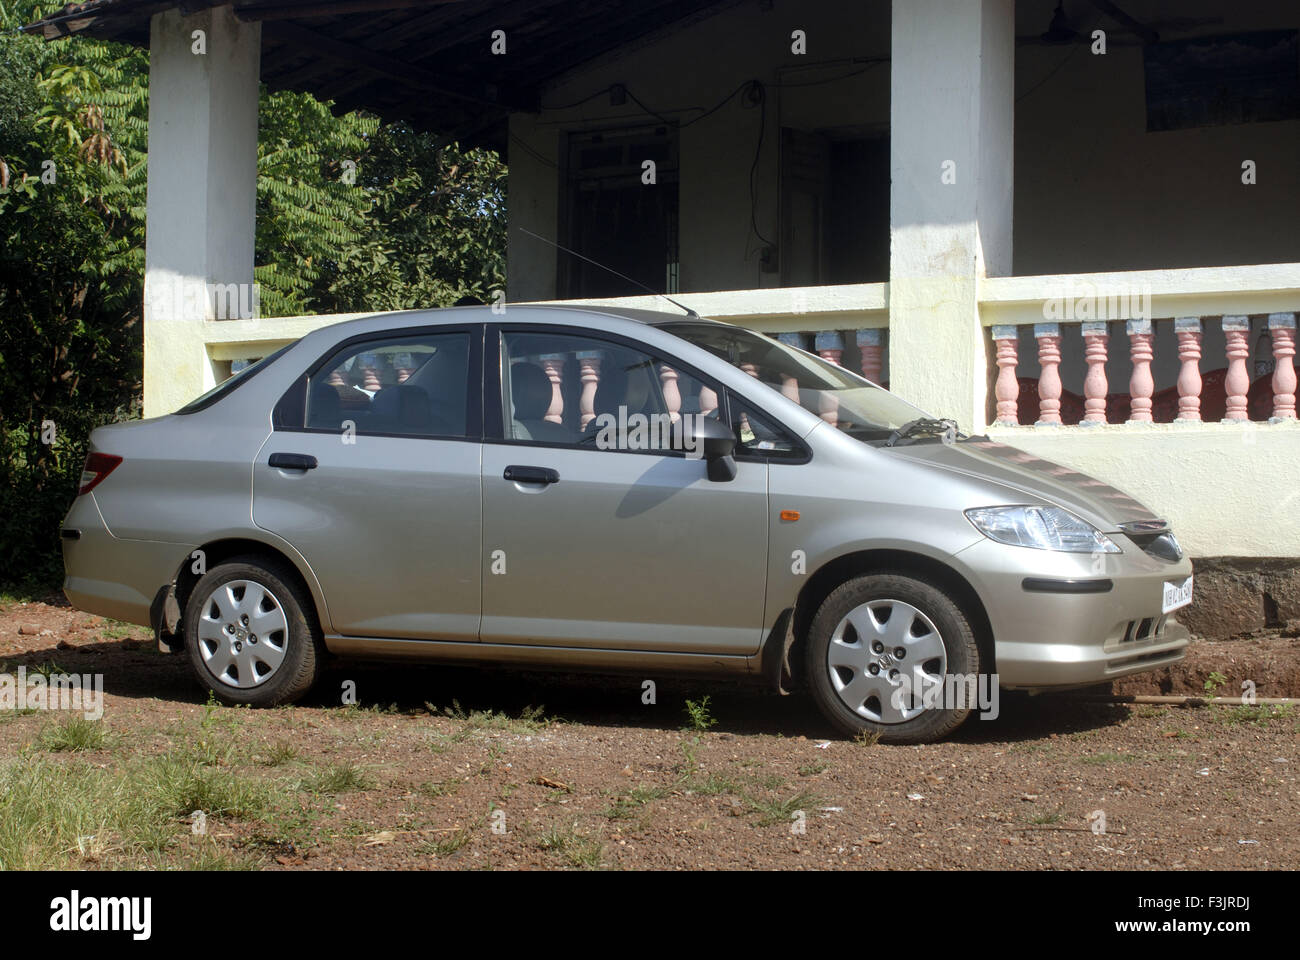 Honda City Luxury Car Park In Front Of Bungalow Silver Grey Color